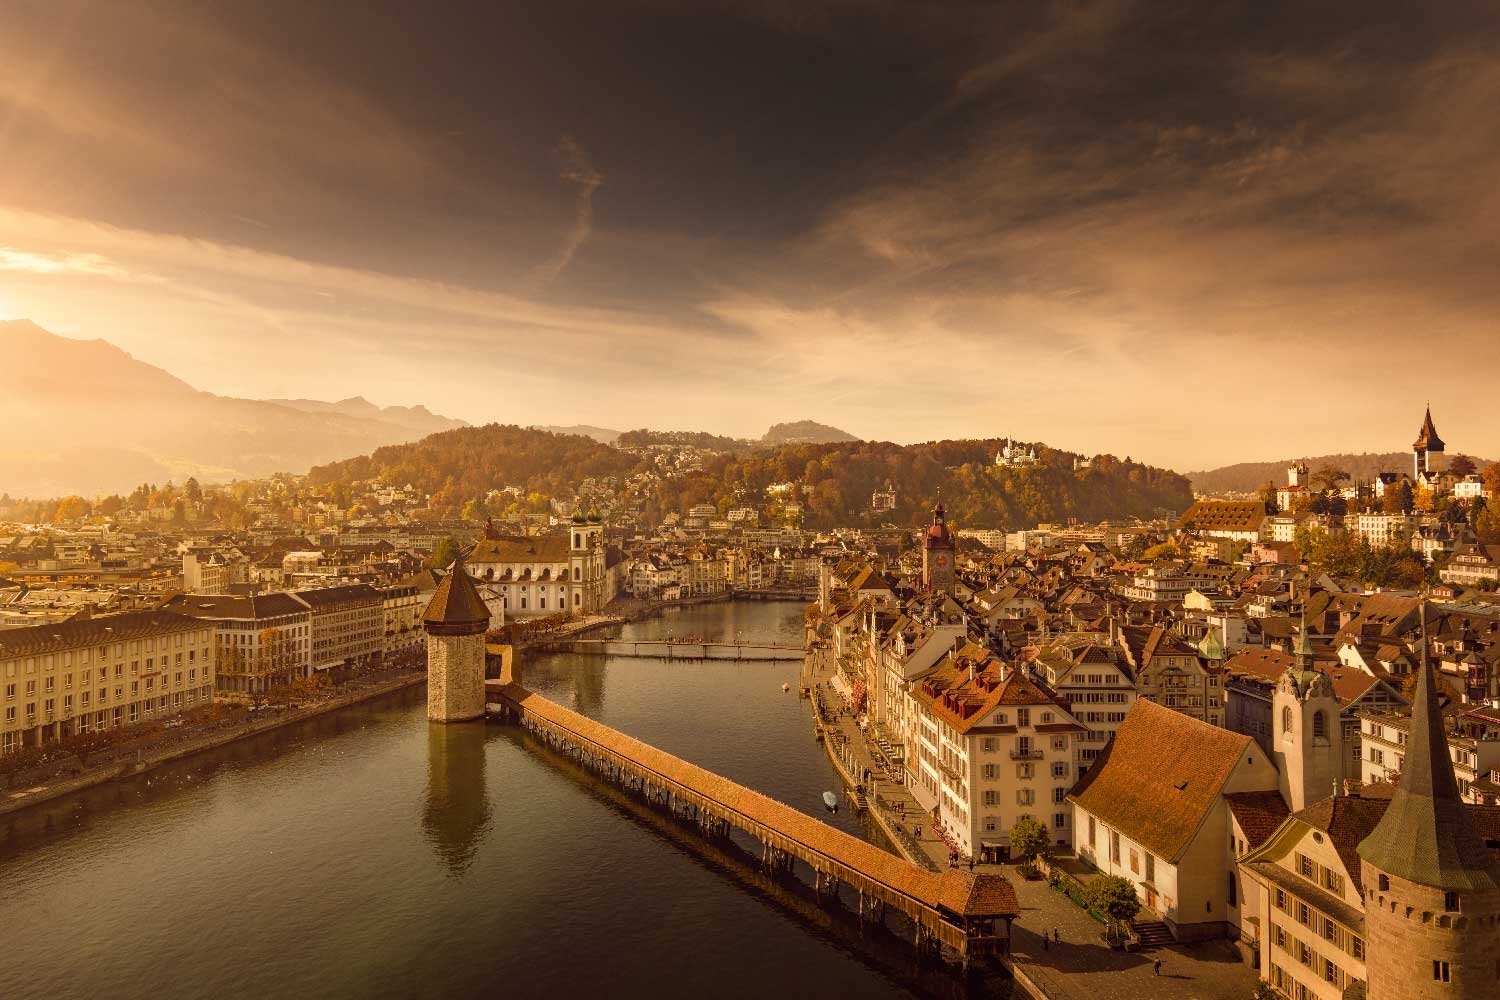 Set in the middle of Switzerland, cradled within the Swiss alps and located on the shores of Lake Lucerne, the city of Lucerne was hugely popular with royalty and artists in the second half of the 19th century.